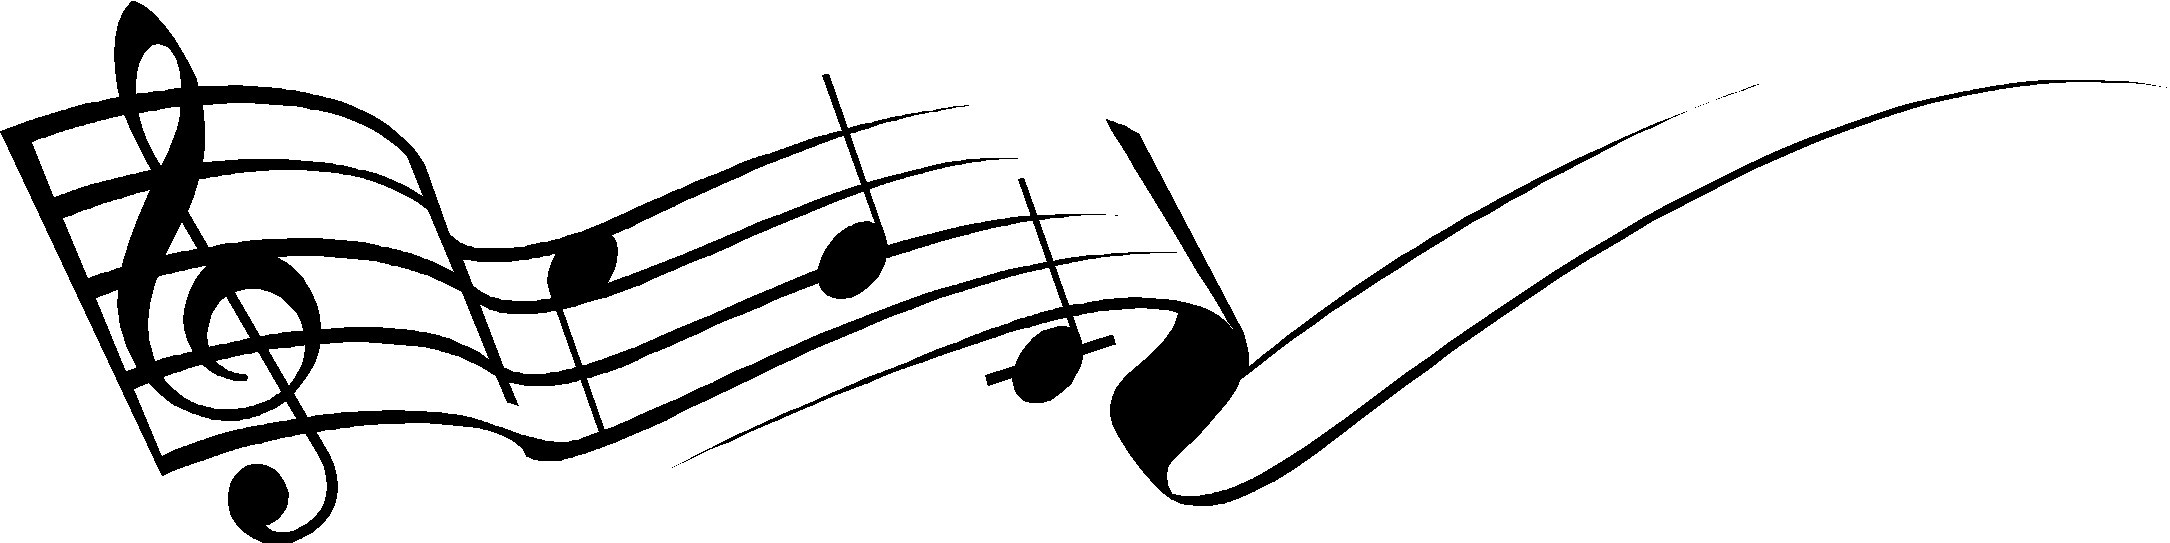 2170x543 Music Notes Clipart String